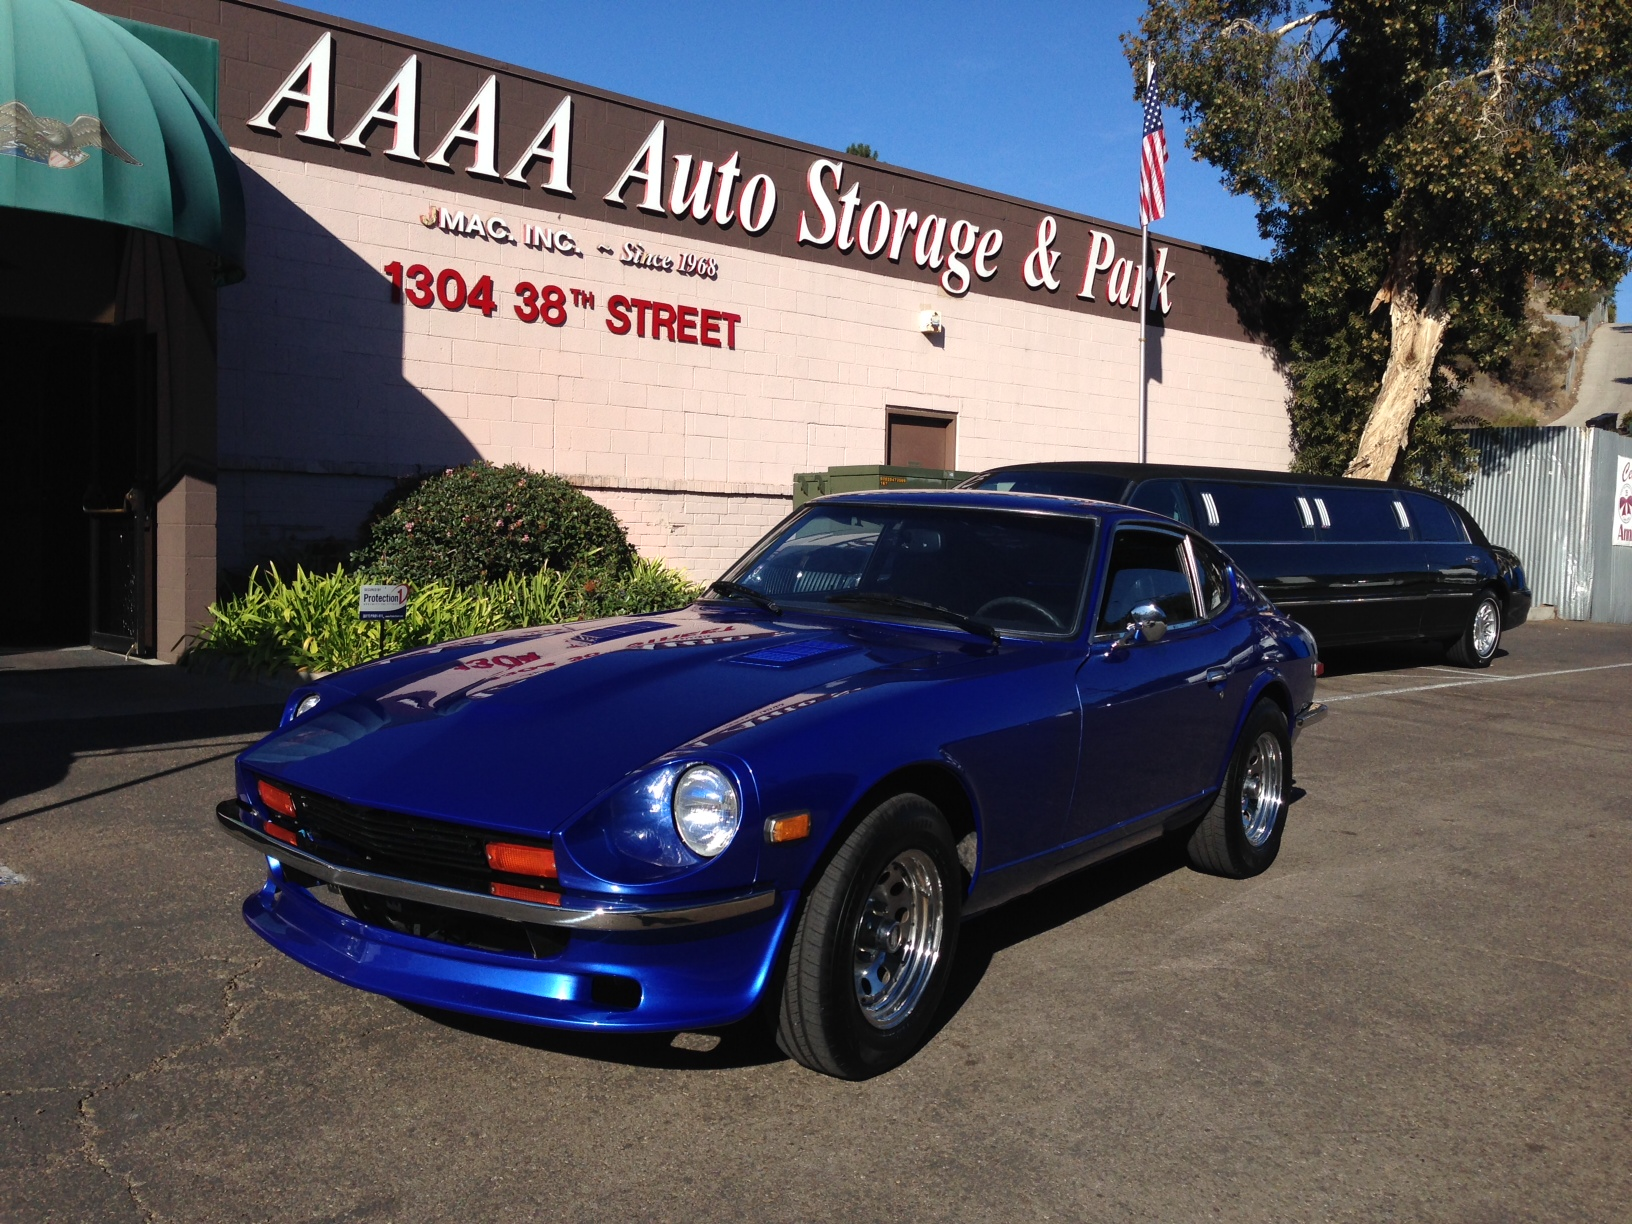 Outdoor Car Storage >> Multiple Car Storage Aaaa Auto Storage Park San Diego Ca